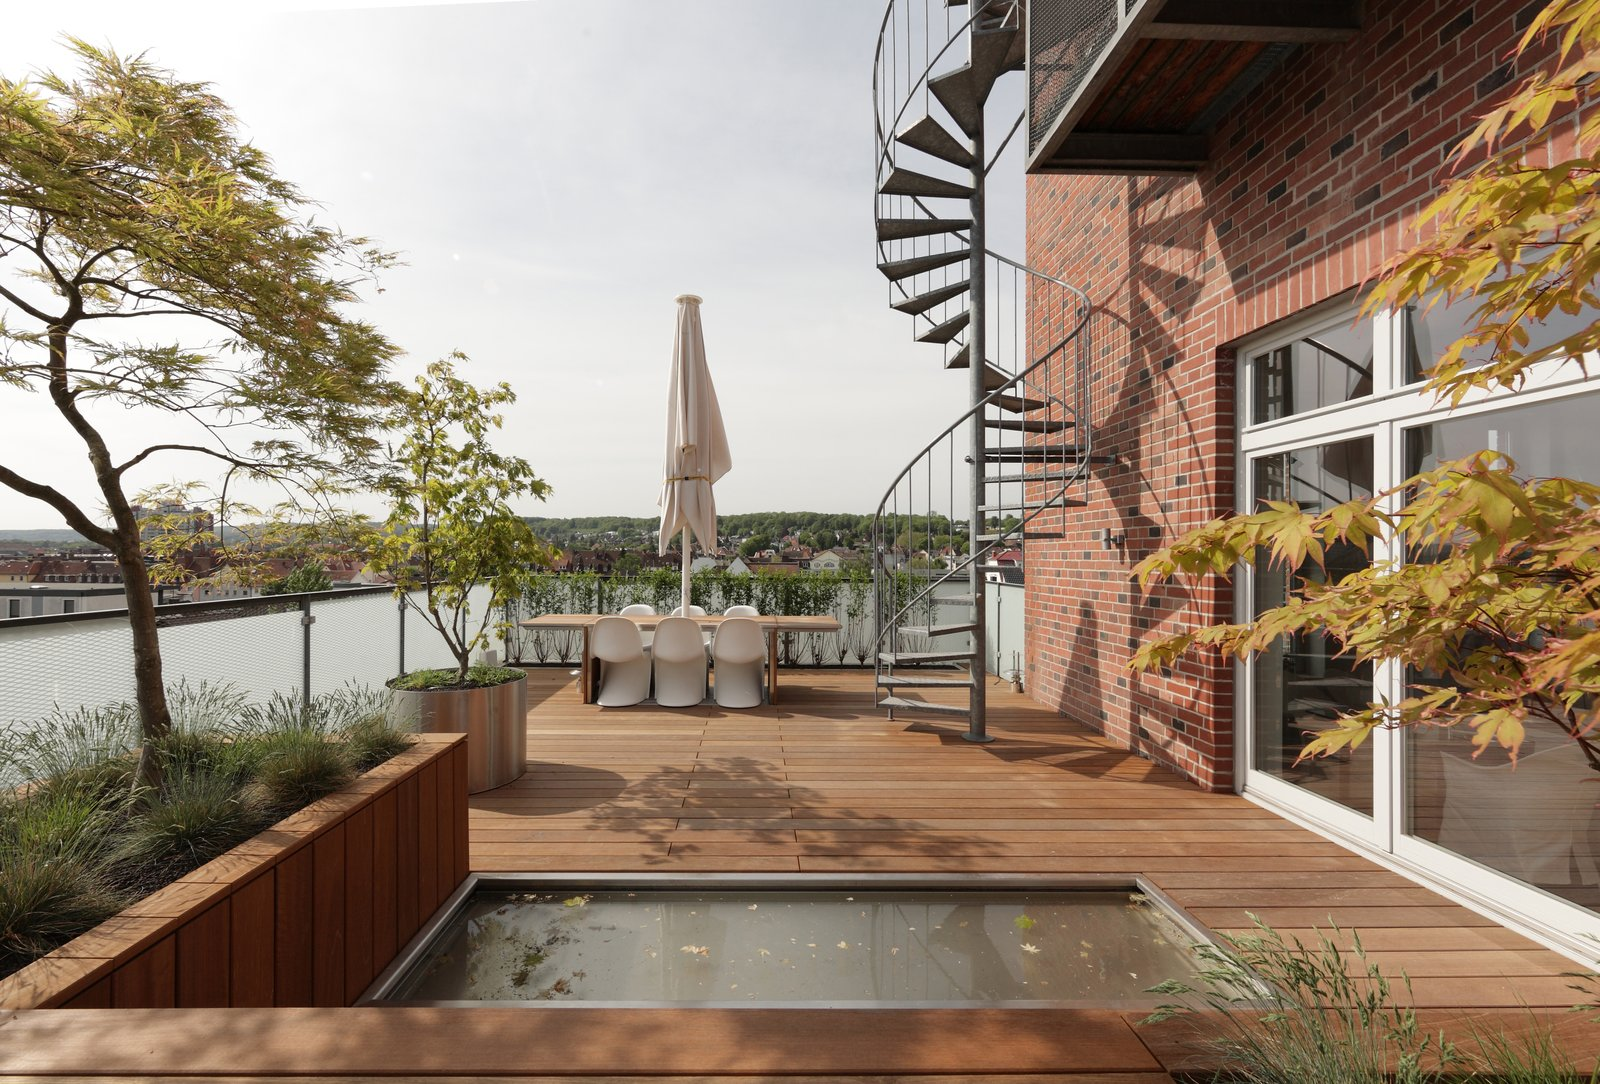 6 Outdoor Furniture Ideas That Will Make Your Terrace One of a Kind outdoor furniture 6 Outdoor Furniture Ideas That Will Make Your Terrace One of a Kind 6 Outdoor Furniture Ideas That Will Make Your Terrace One of a Kind 6